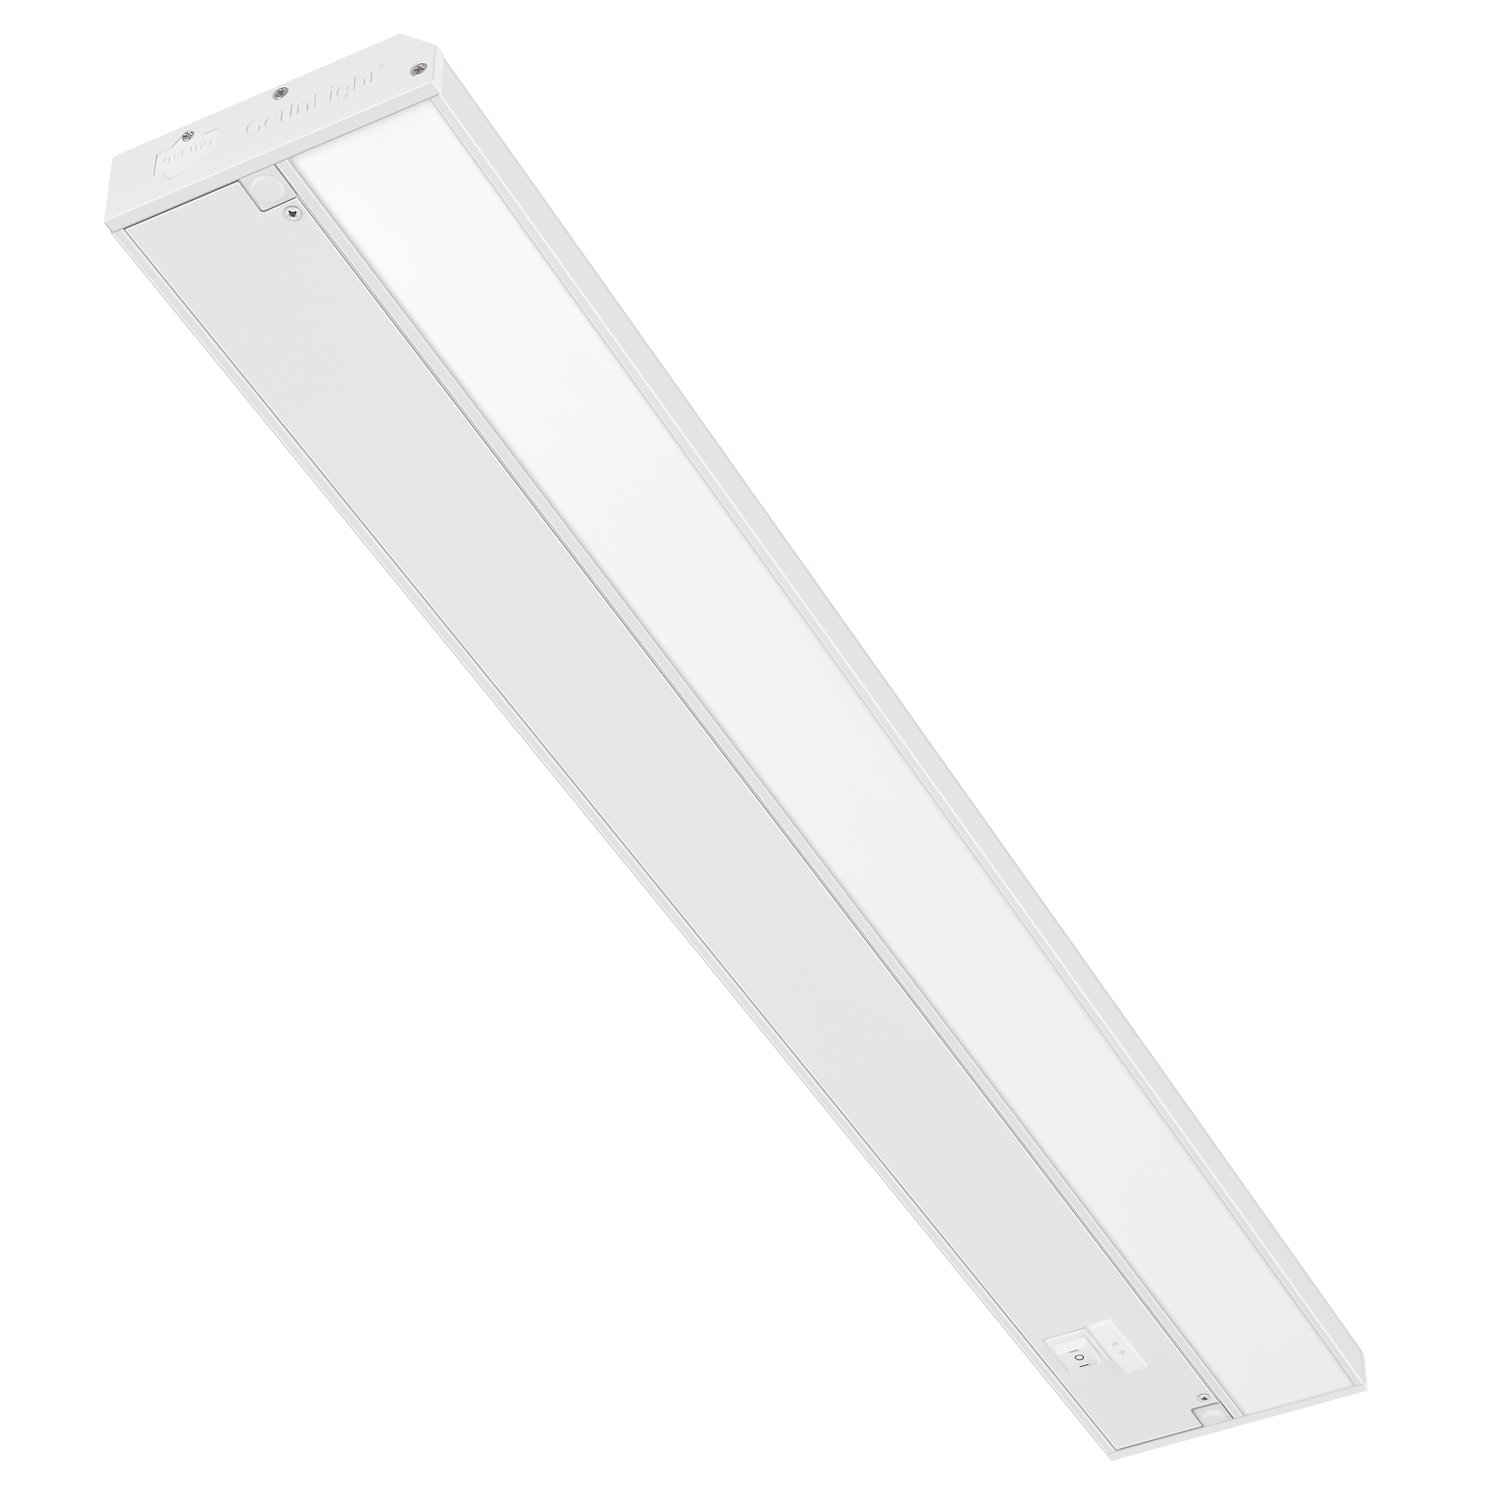 GetInLight 3 Color Levels Dimmable LED Under Cabinet Lighting with ETL Listed, Warm White (2700K), Soft White (3000K), Bright White (4000K), White Finished, 24-inch, IN-0210-3 by GetInLight